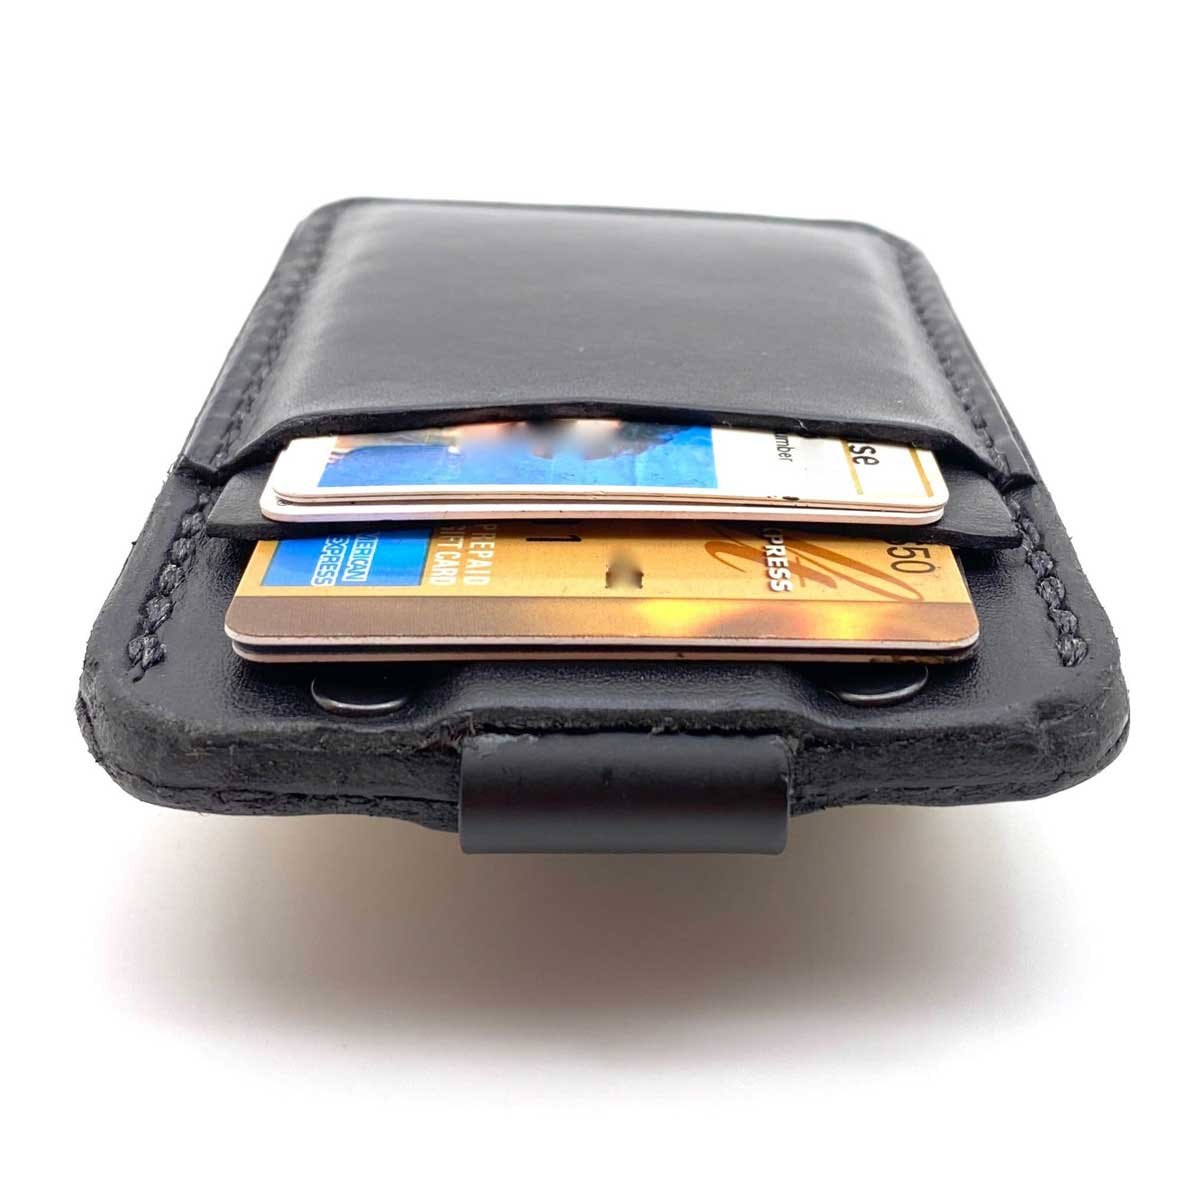 Top side of Black Bridle leather minimalist wallet with credit cards in pockets